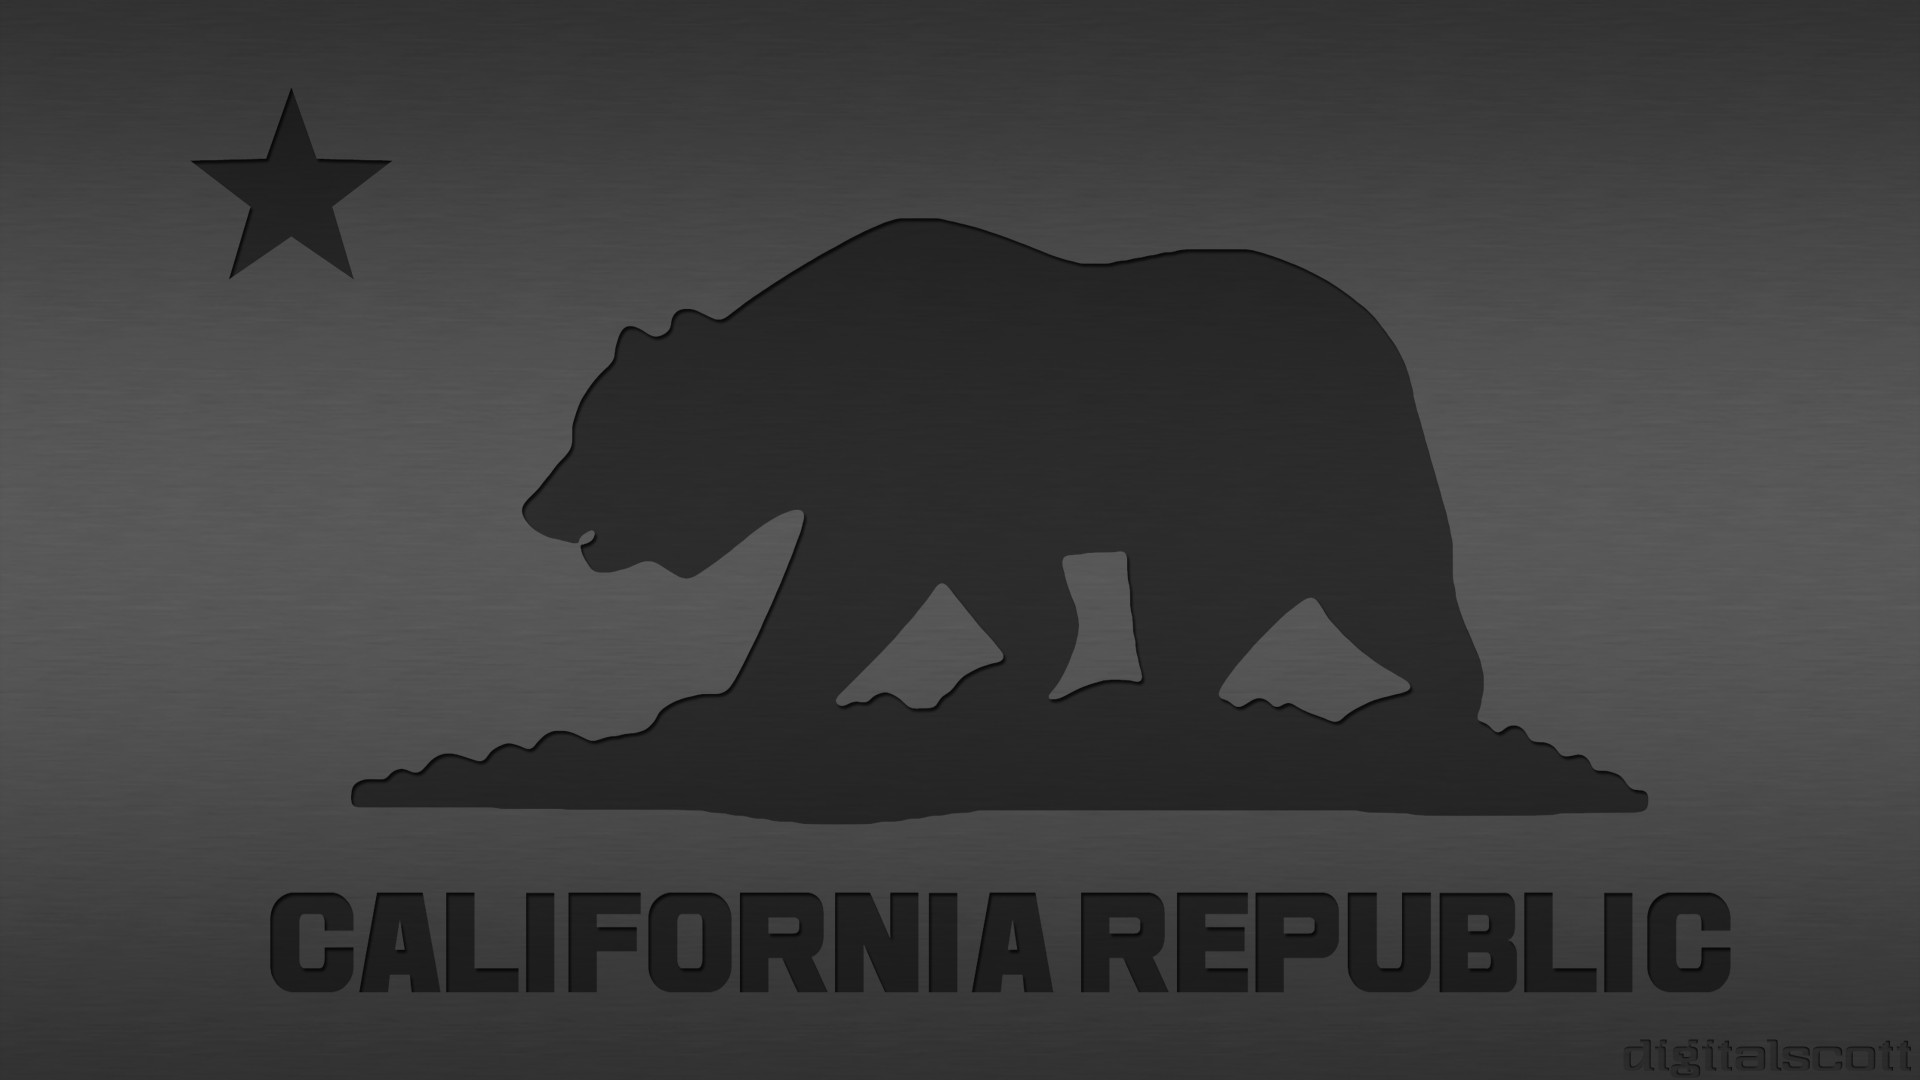 1920x1080 New California Republic Wallpaper Wallpapersafari